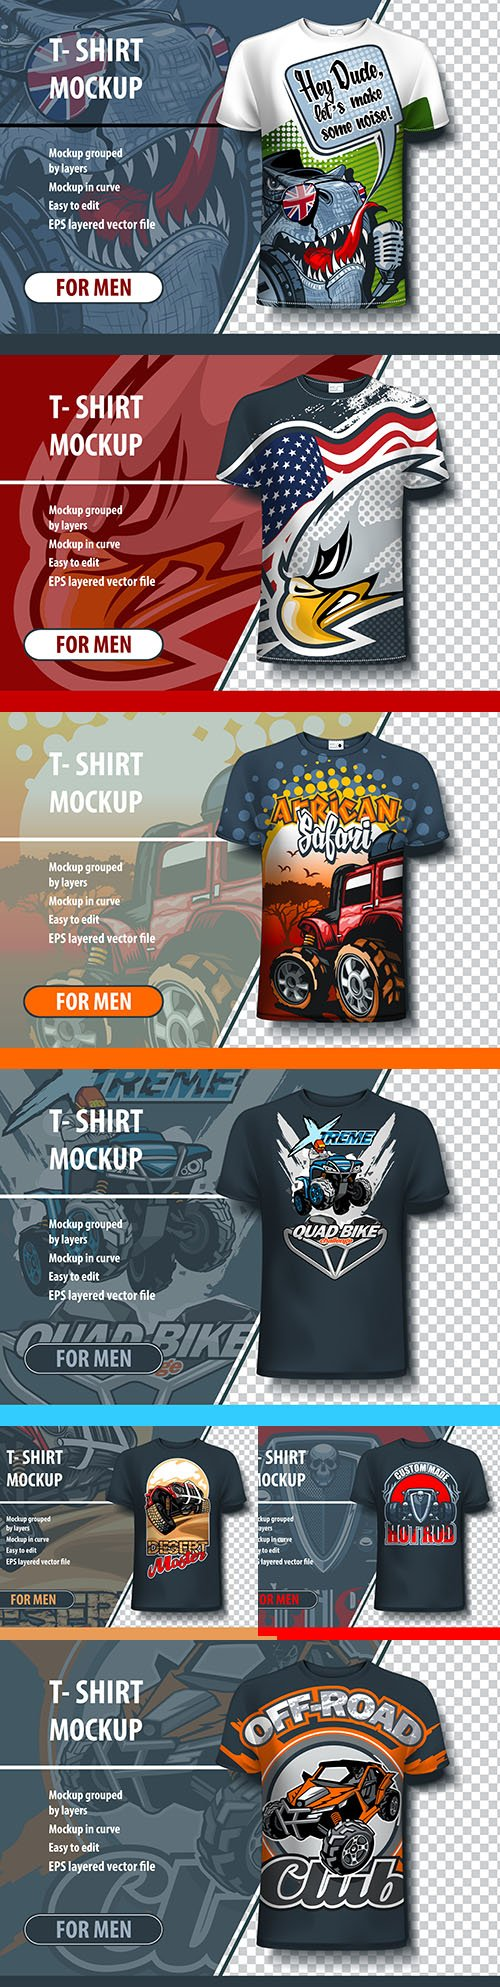 Design template T-shirt with logo for printing